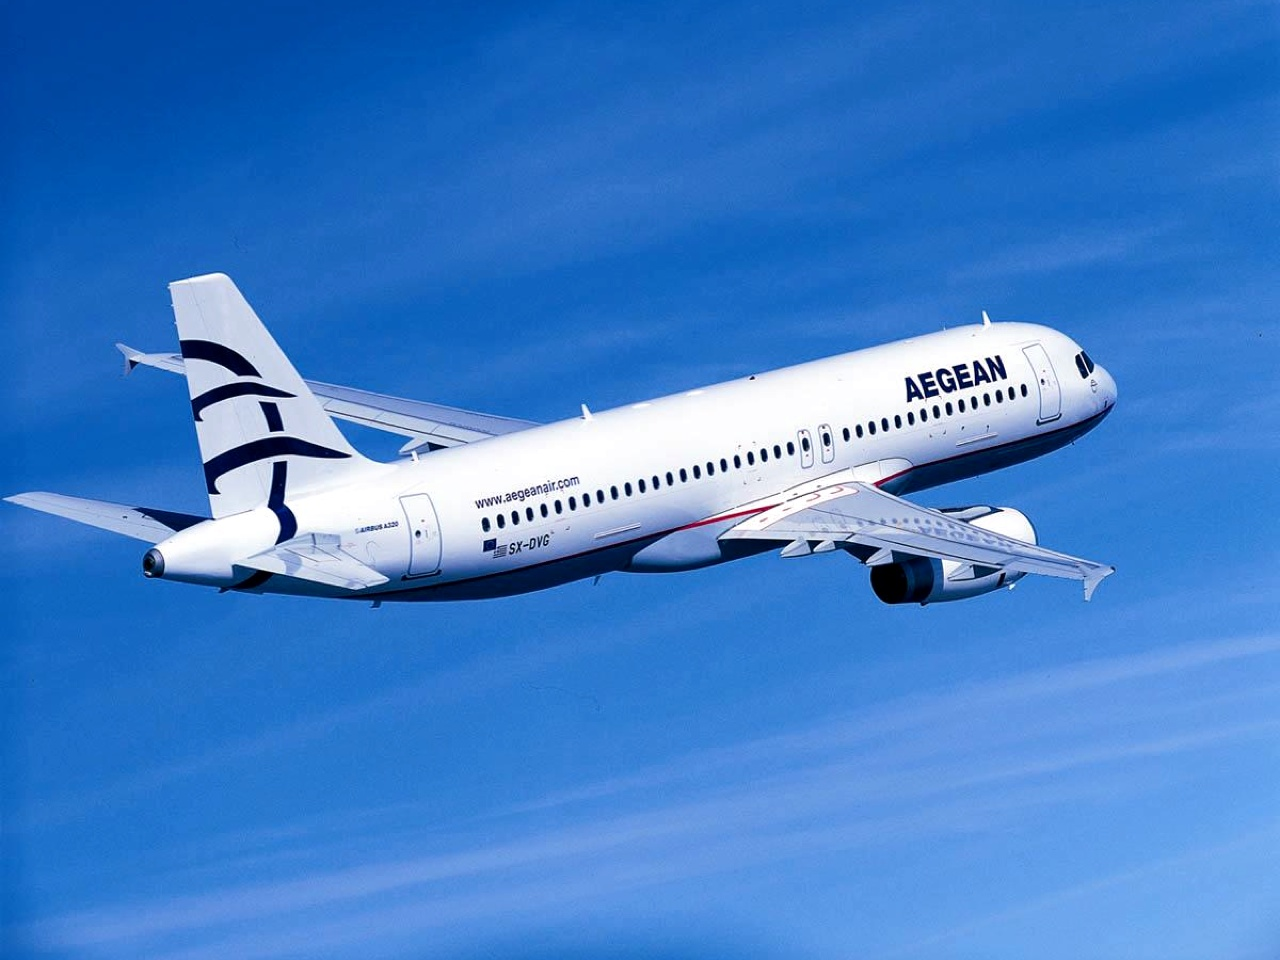 Condé Nast Traveler: AEGEAN Among World's Top 10 Airlines